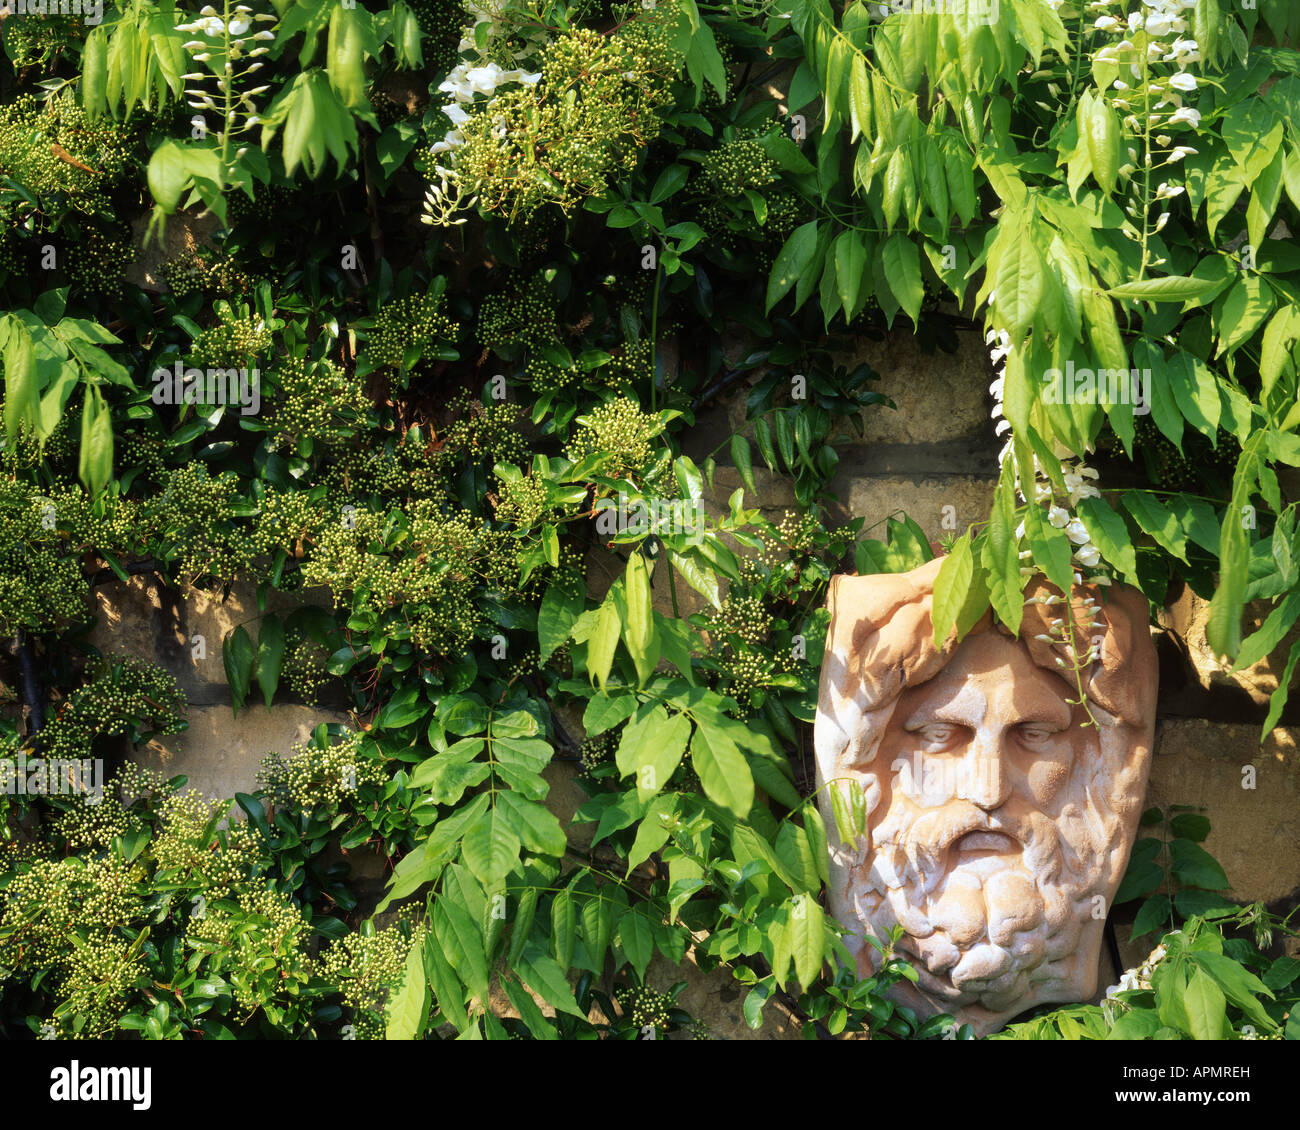 GB - GLOUCESTERSHIRE: Garden Detail at Parkgate (Cheltenham) - Stock Image